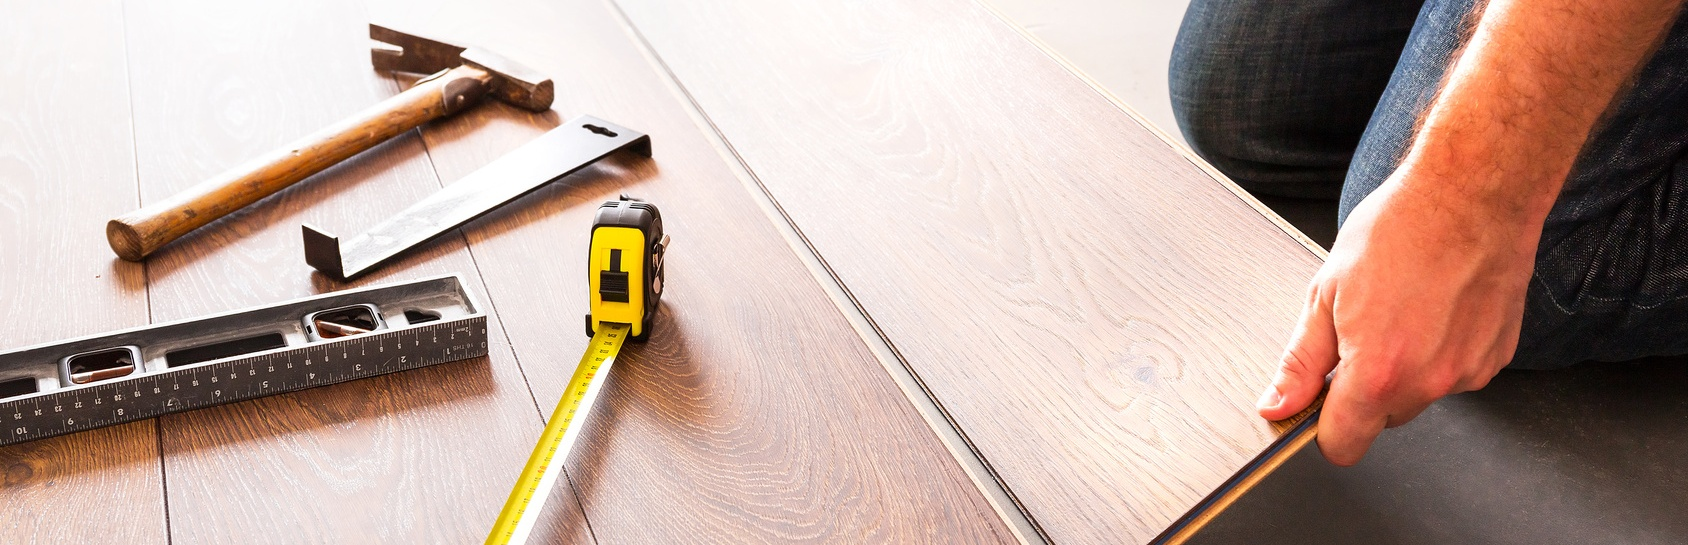 What type of flooring you can use for the renovation of your home?